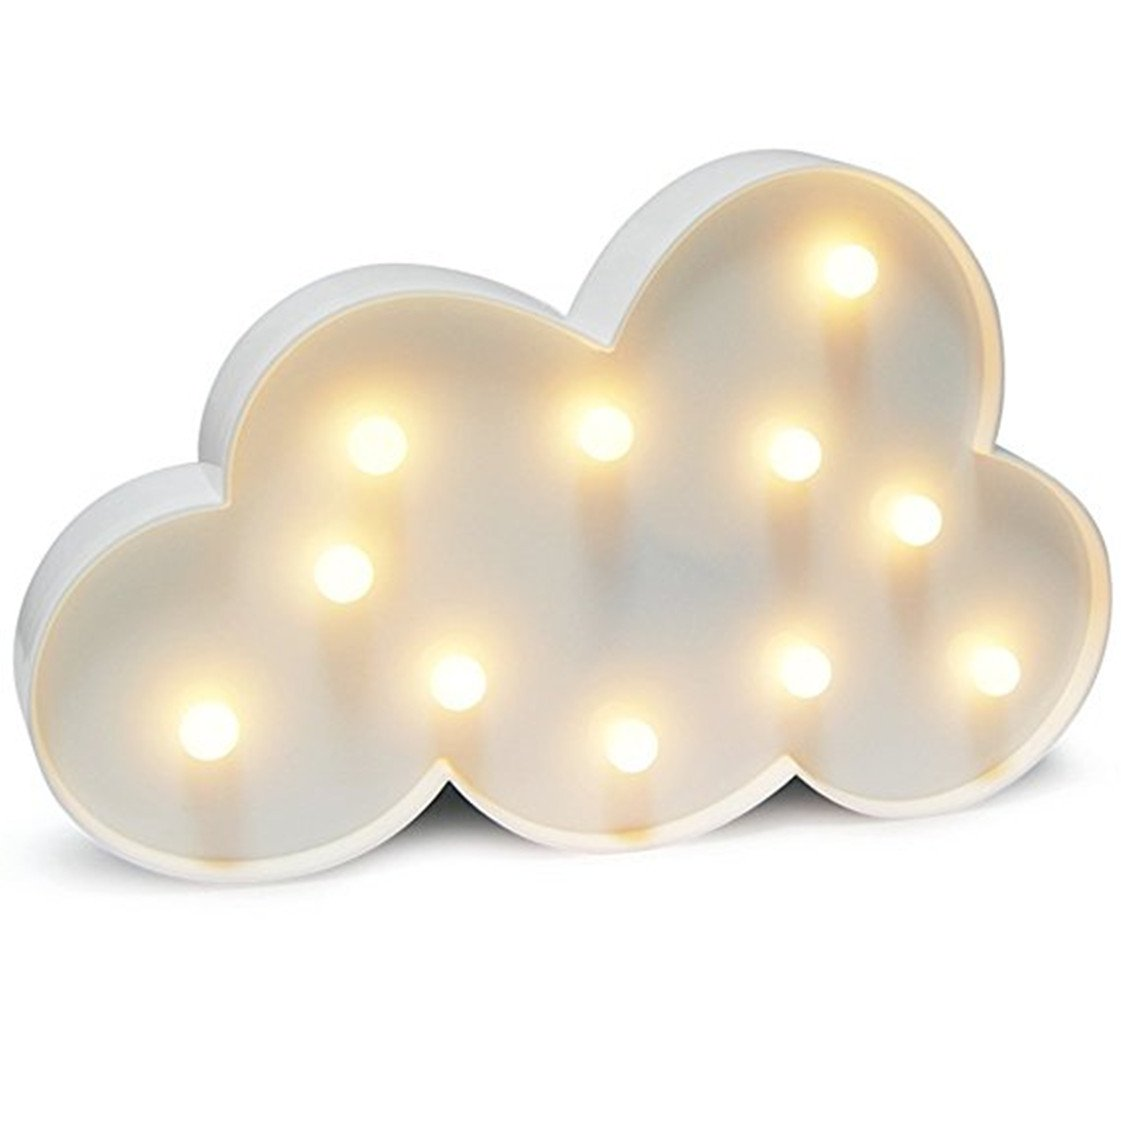 QiaoFei Cloud Night Light LED Marquee Sign-Baby Light-Battery Operated Nursery Lamp, Decorative Light for Kid's Room/Party/Home/Wall Decor(White)